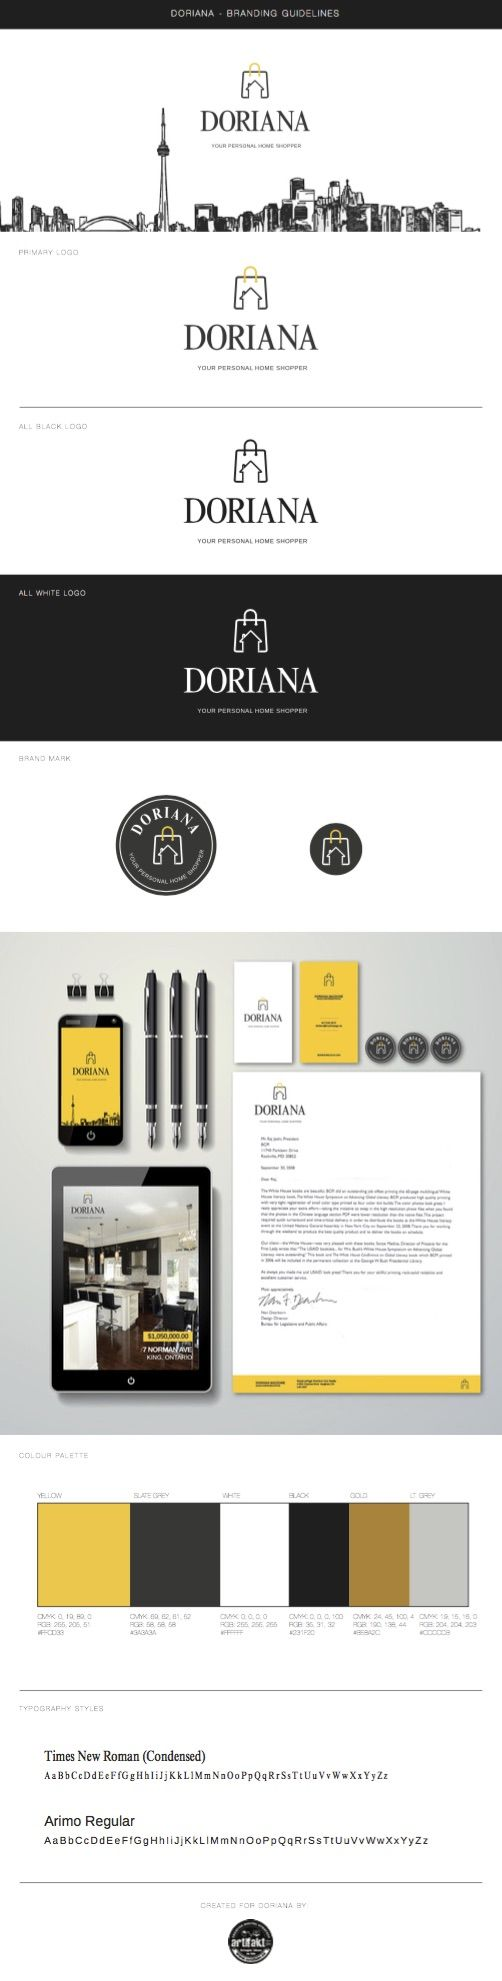 The completed branding guidelines we did for Doriana, the Personal Home Shopper.